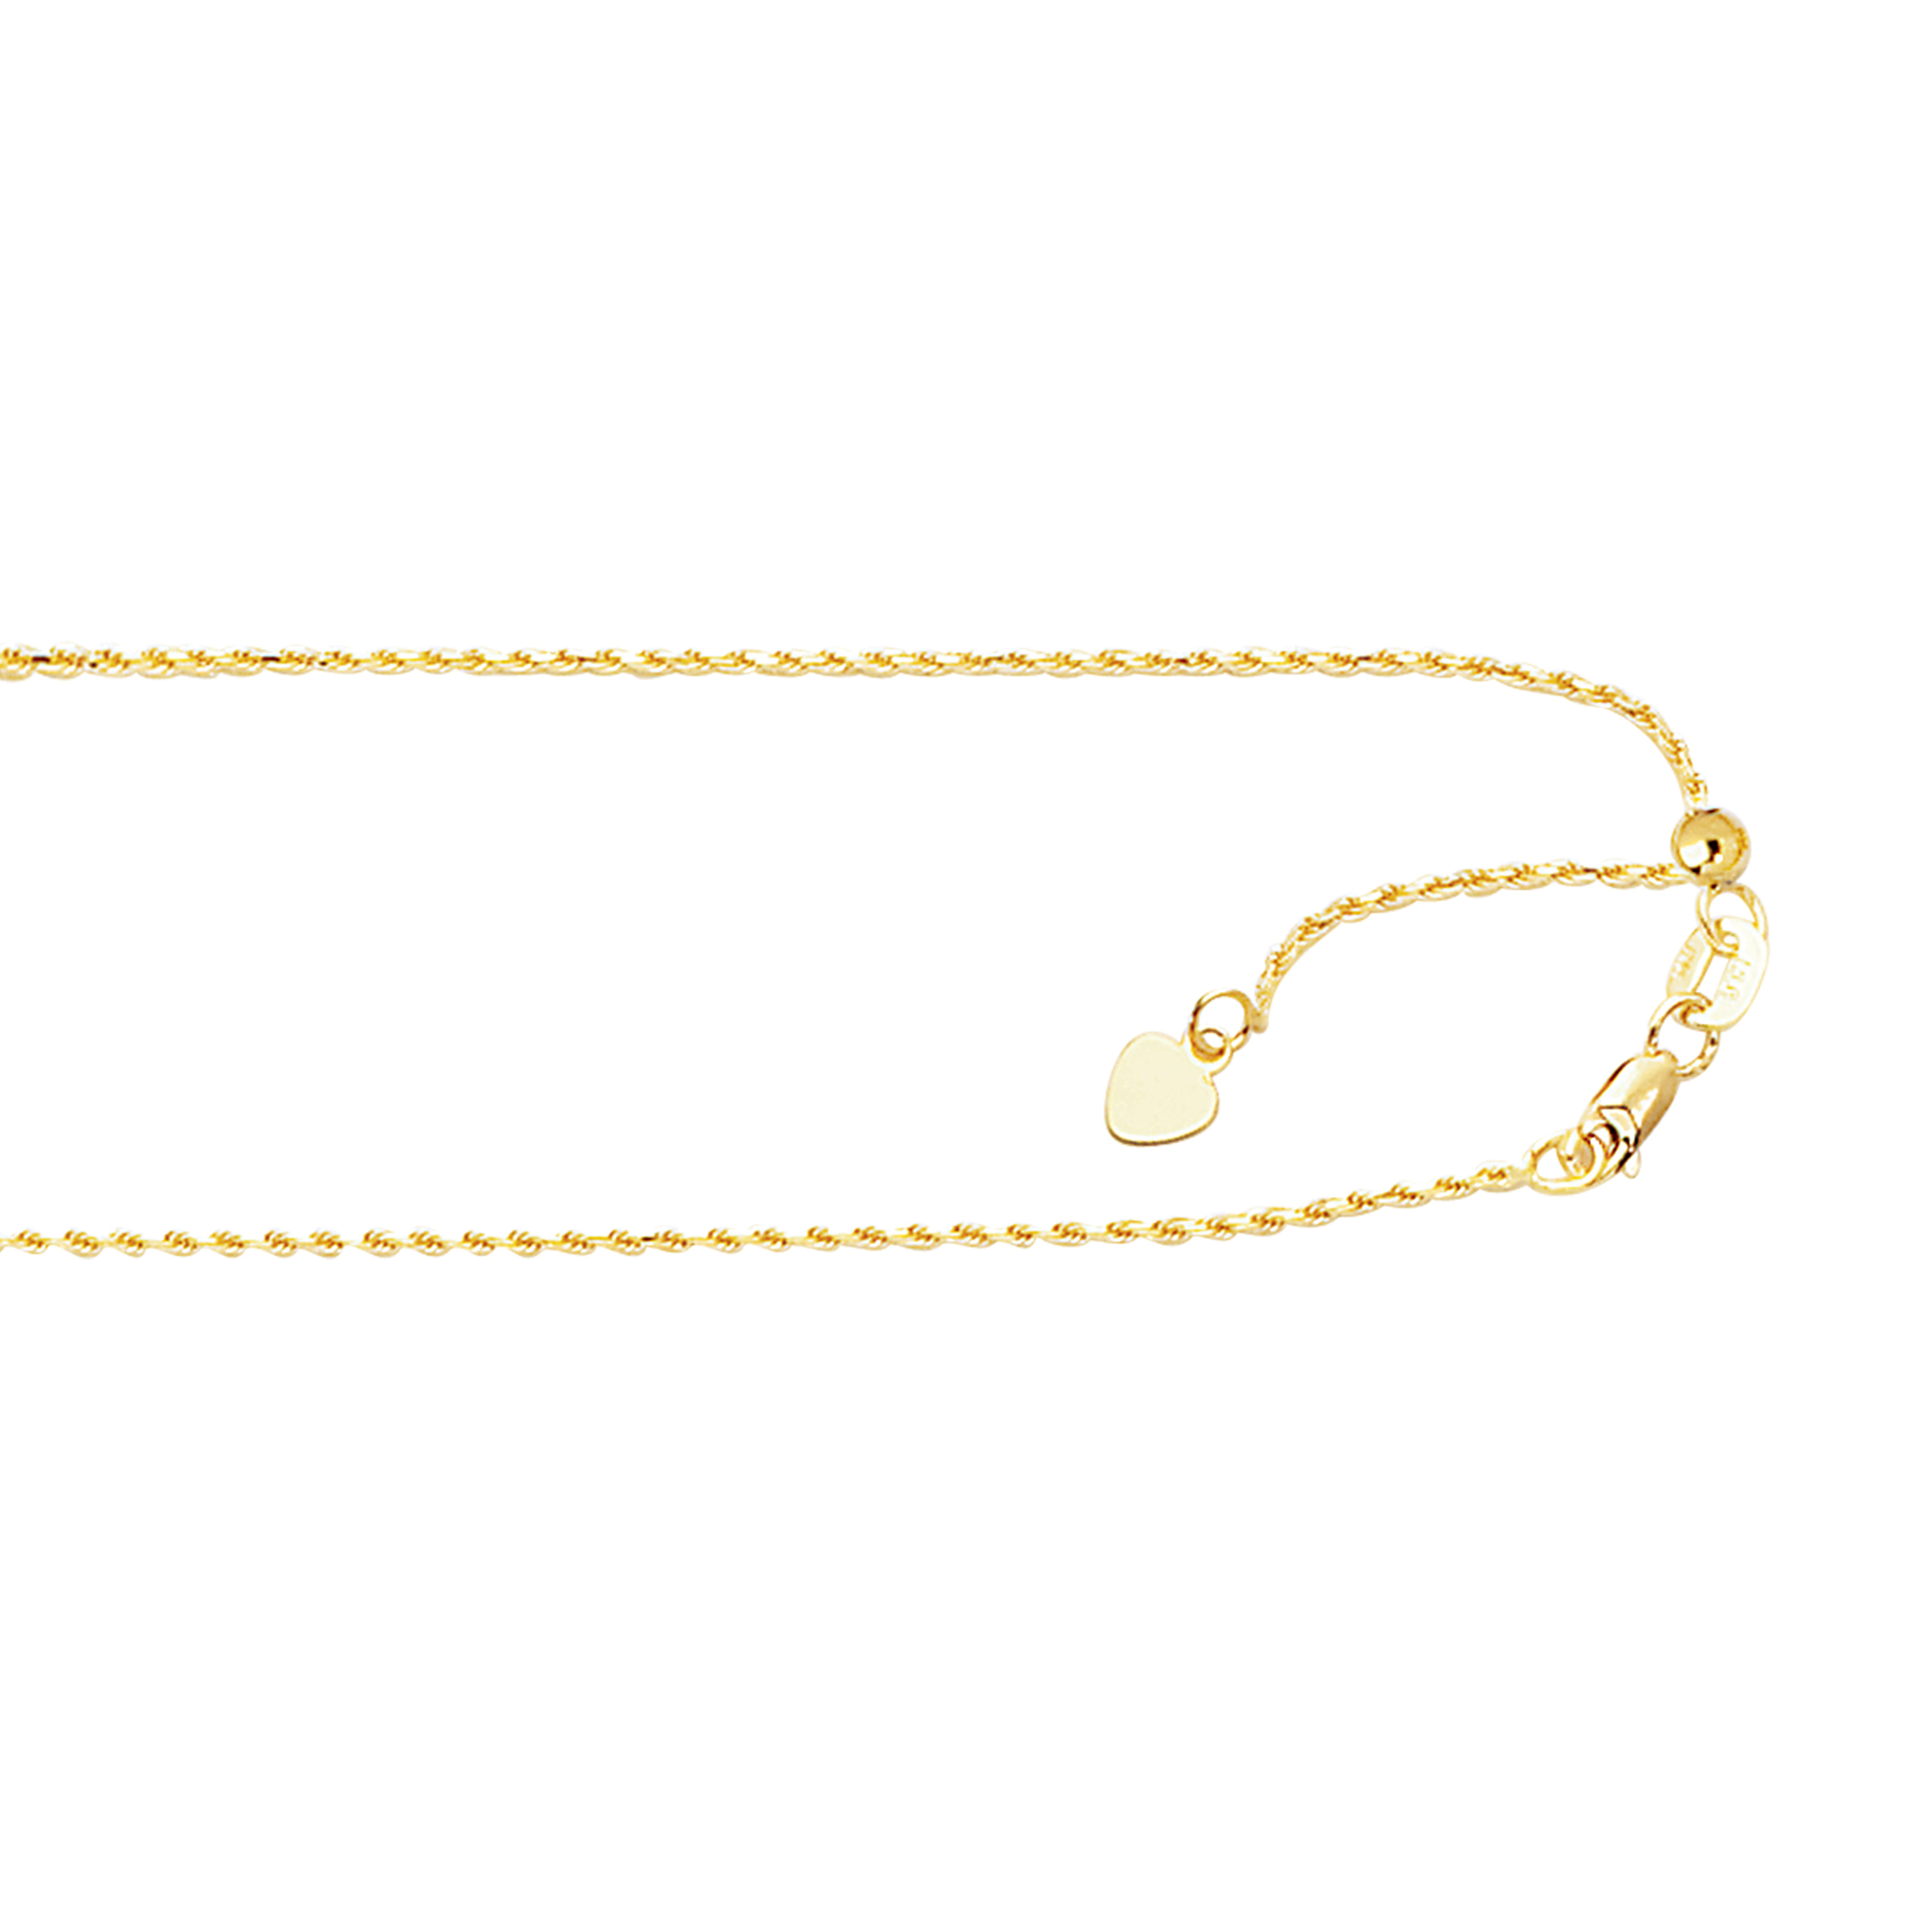 LUXURMAN Solid 10k Gold Rope Chain For Women Adjustable 1mm Wide Yellow Image